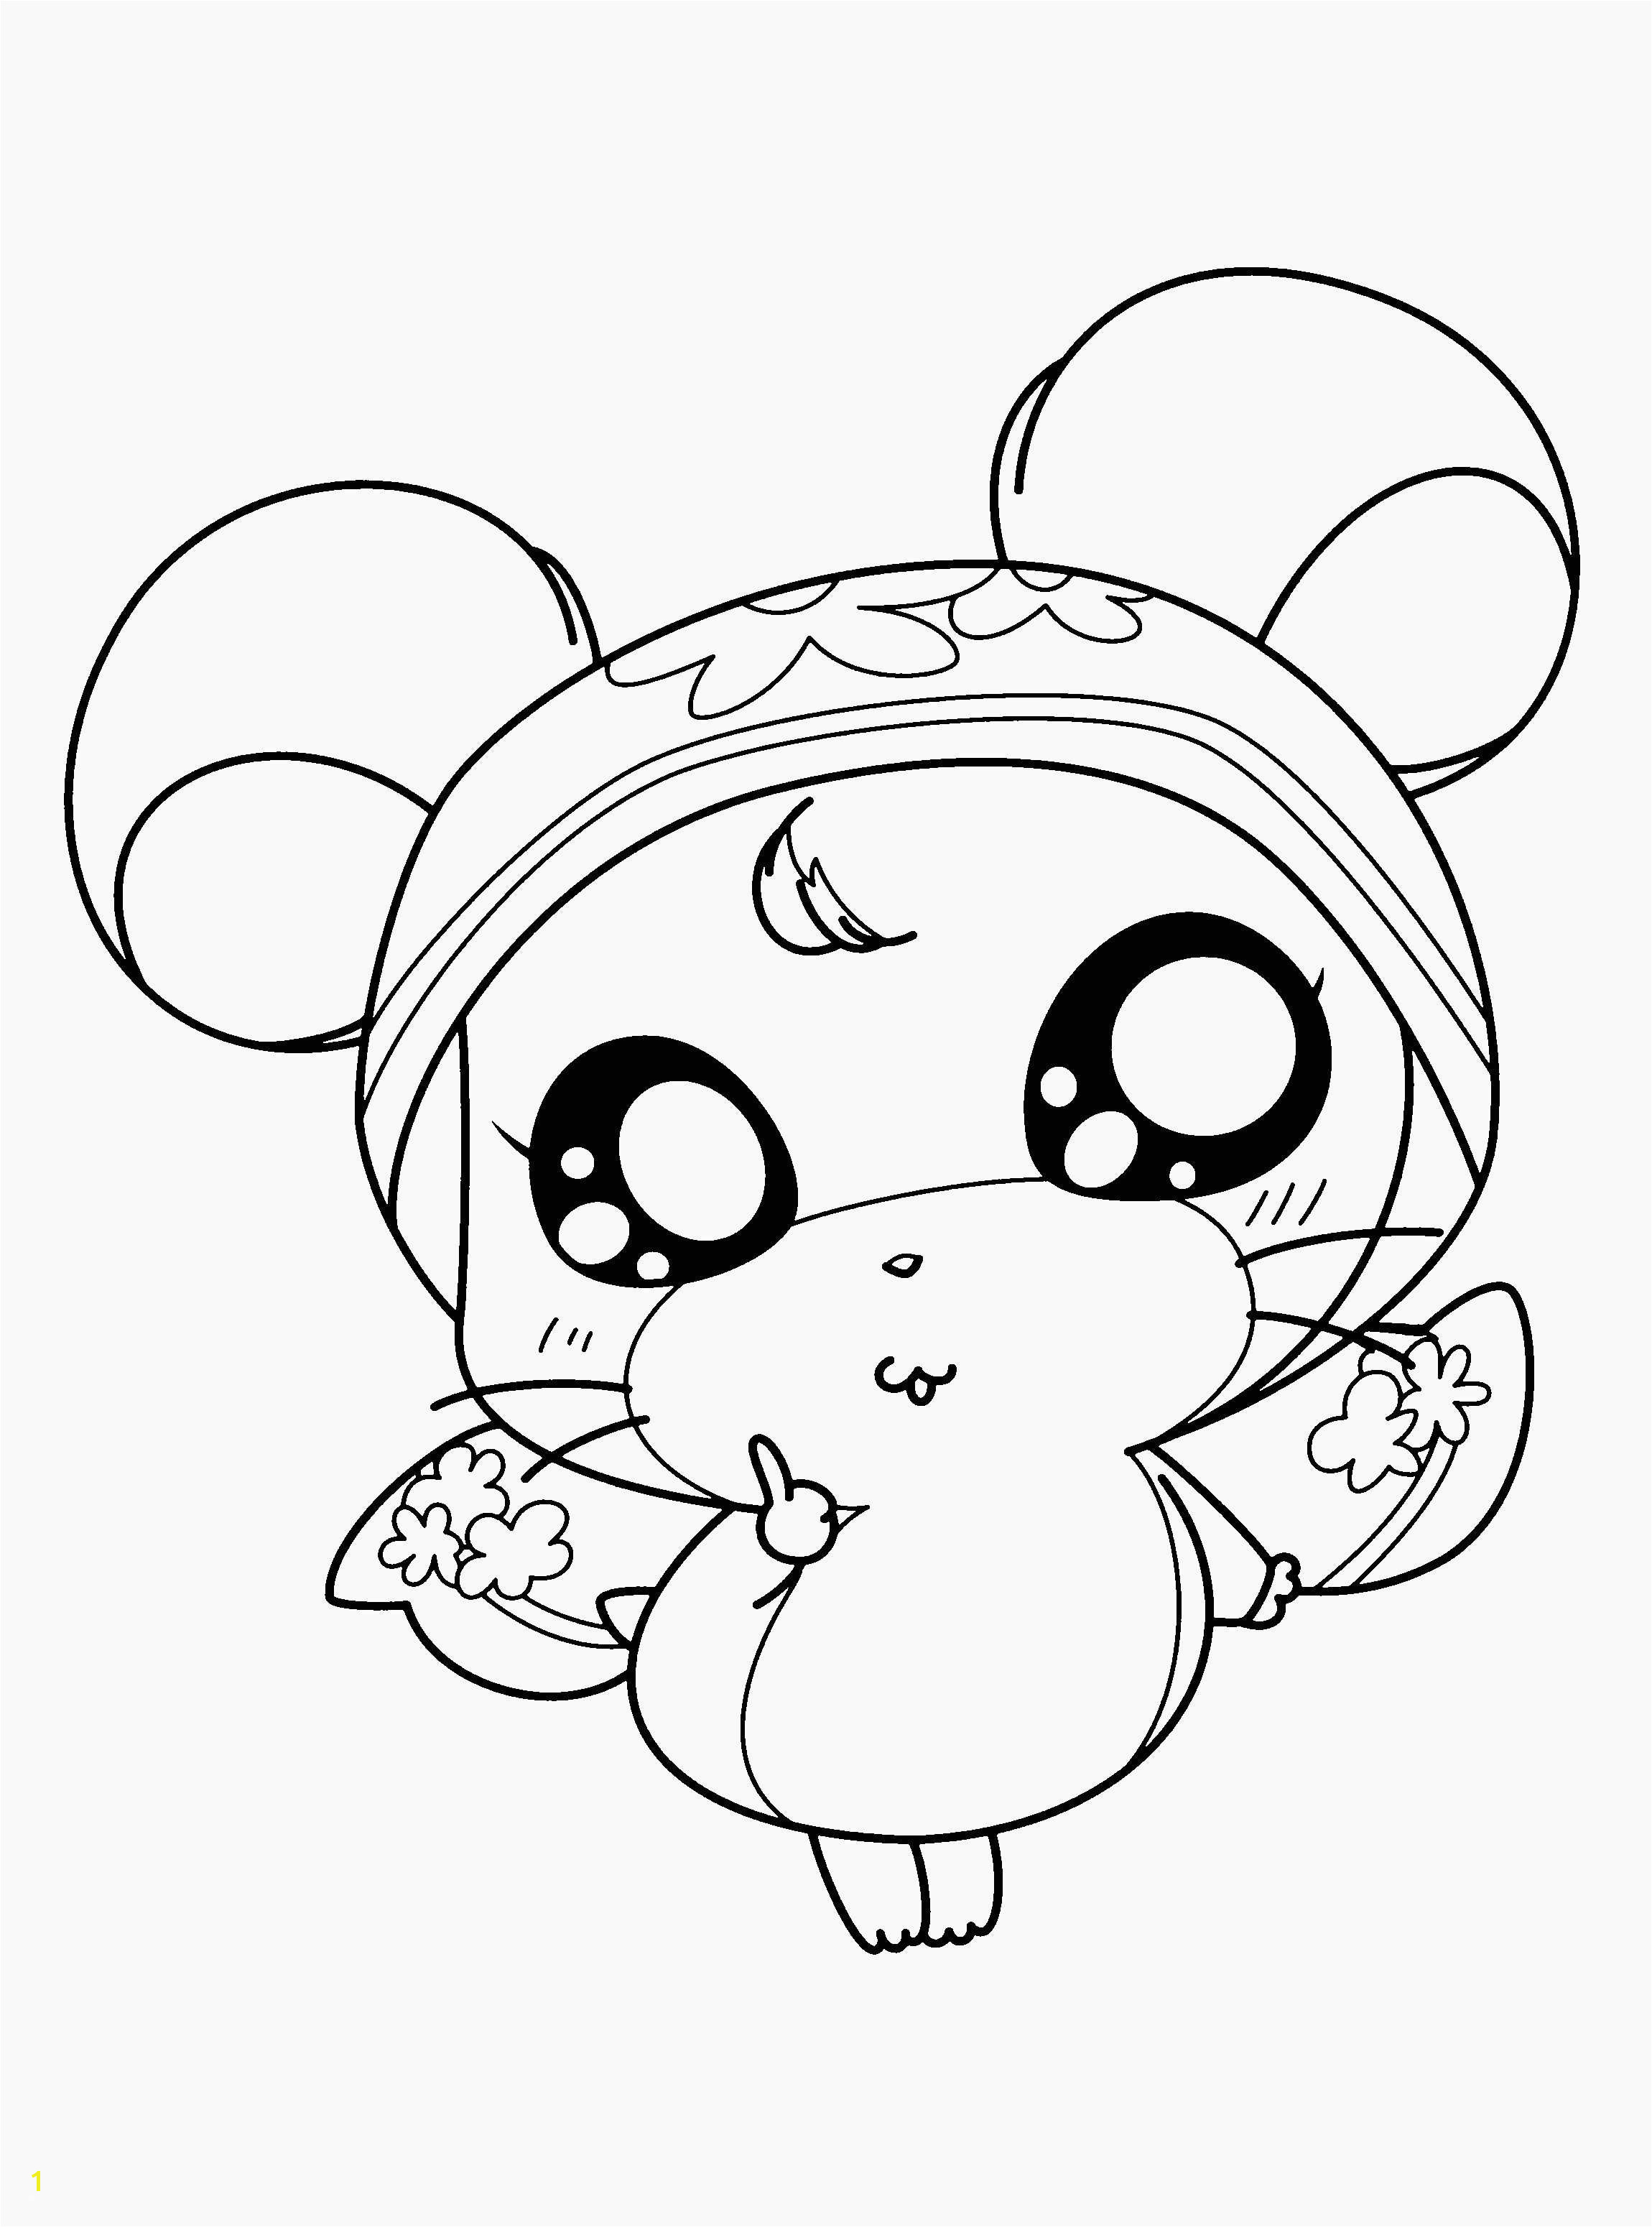 Chipmunk Coloring Pages Fresh Luxury Coloring Pages to Color Line for Free Coloring Pages Chipmunk